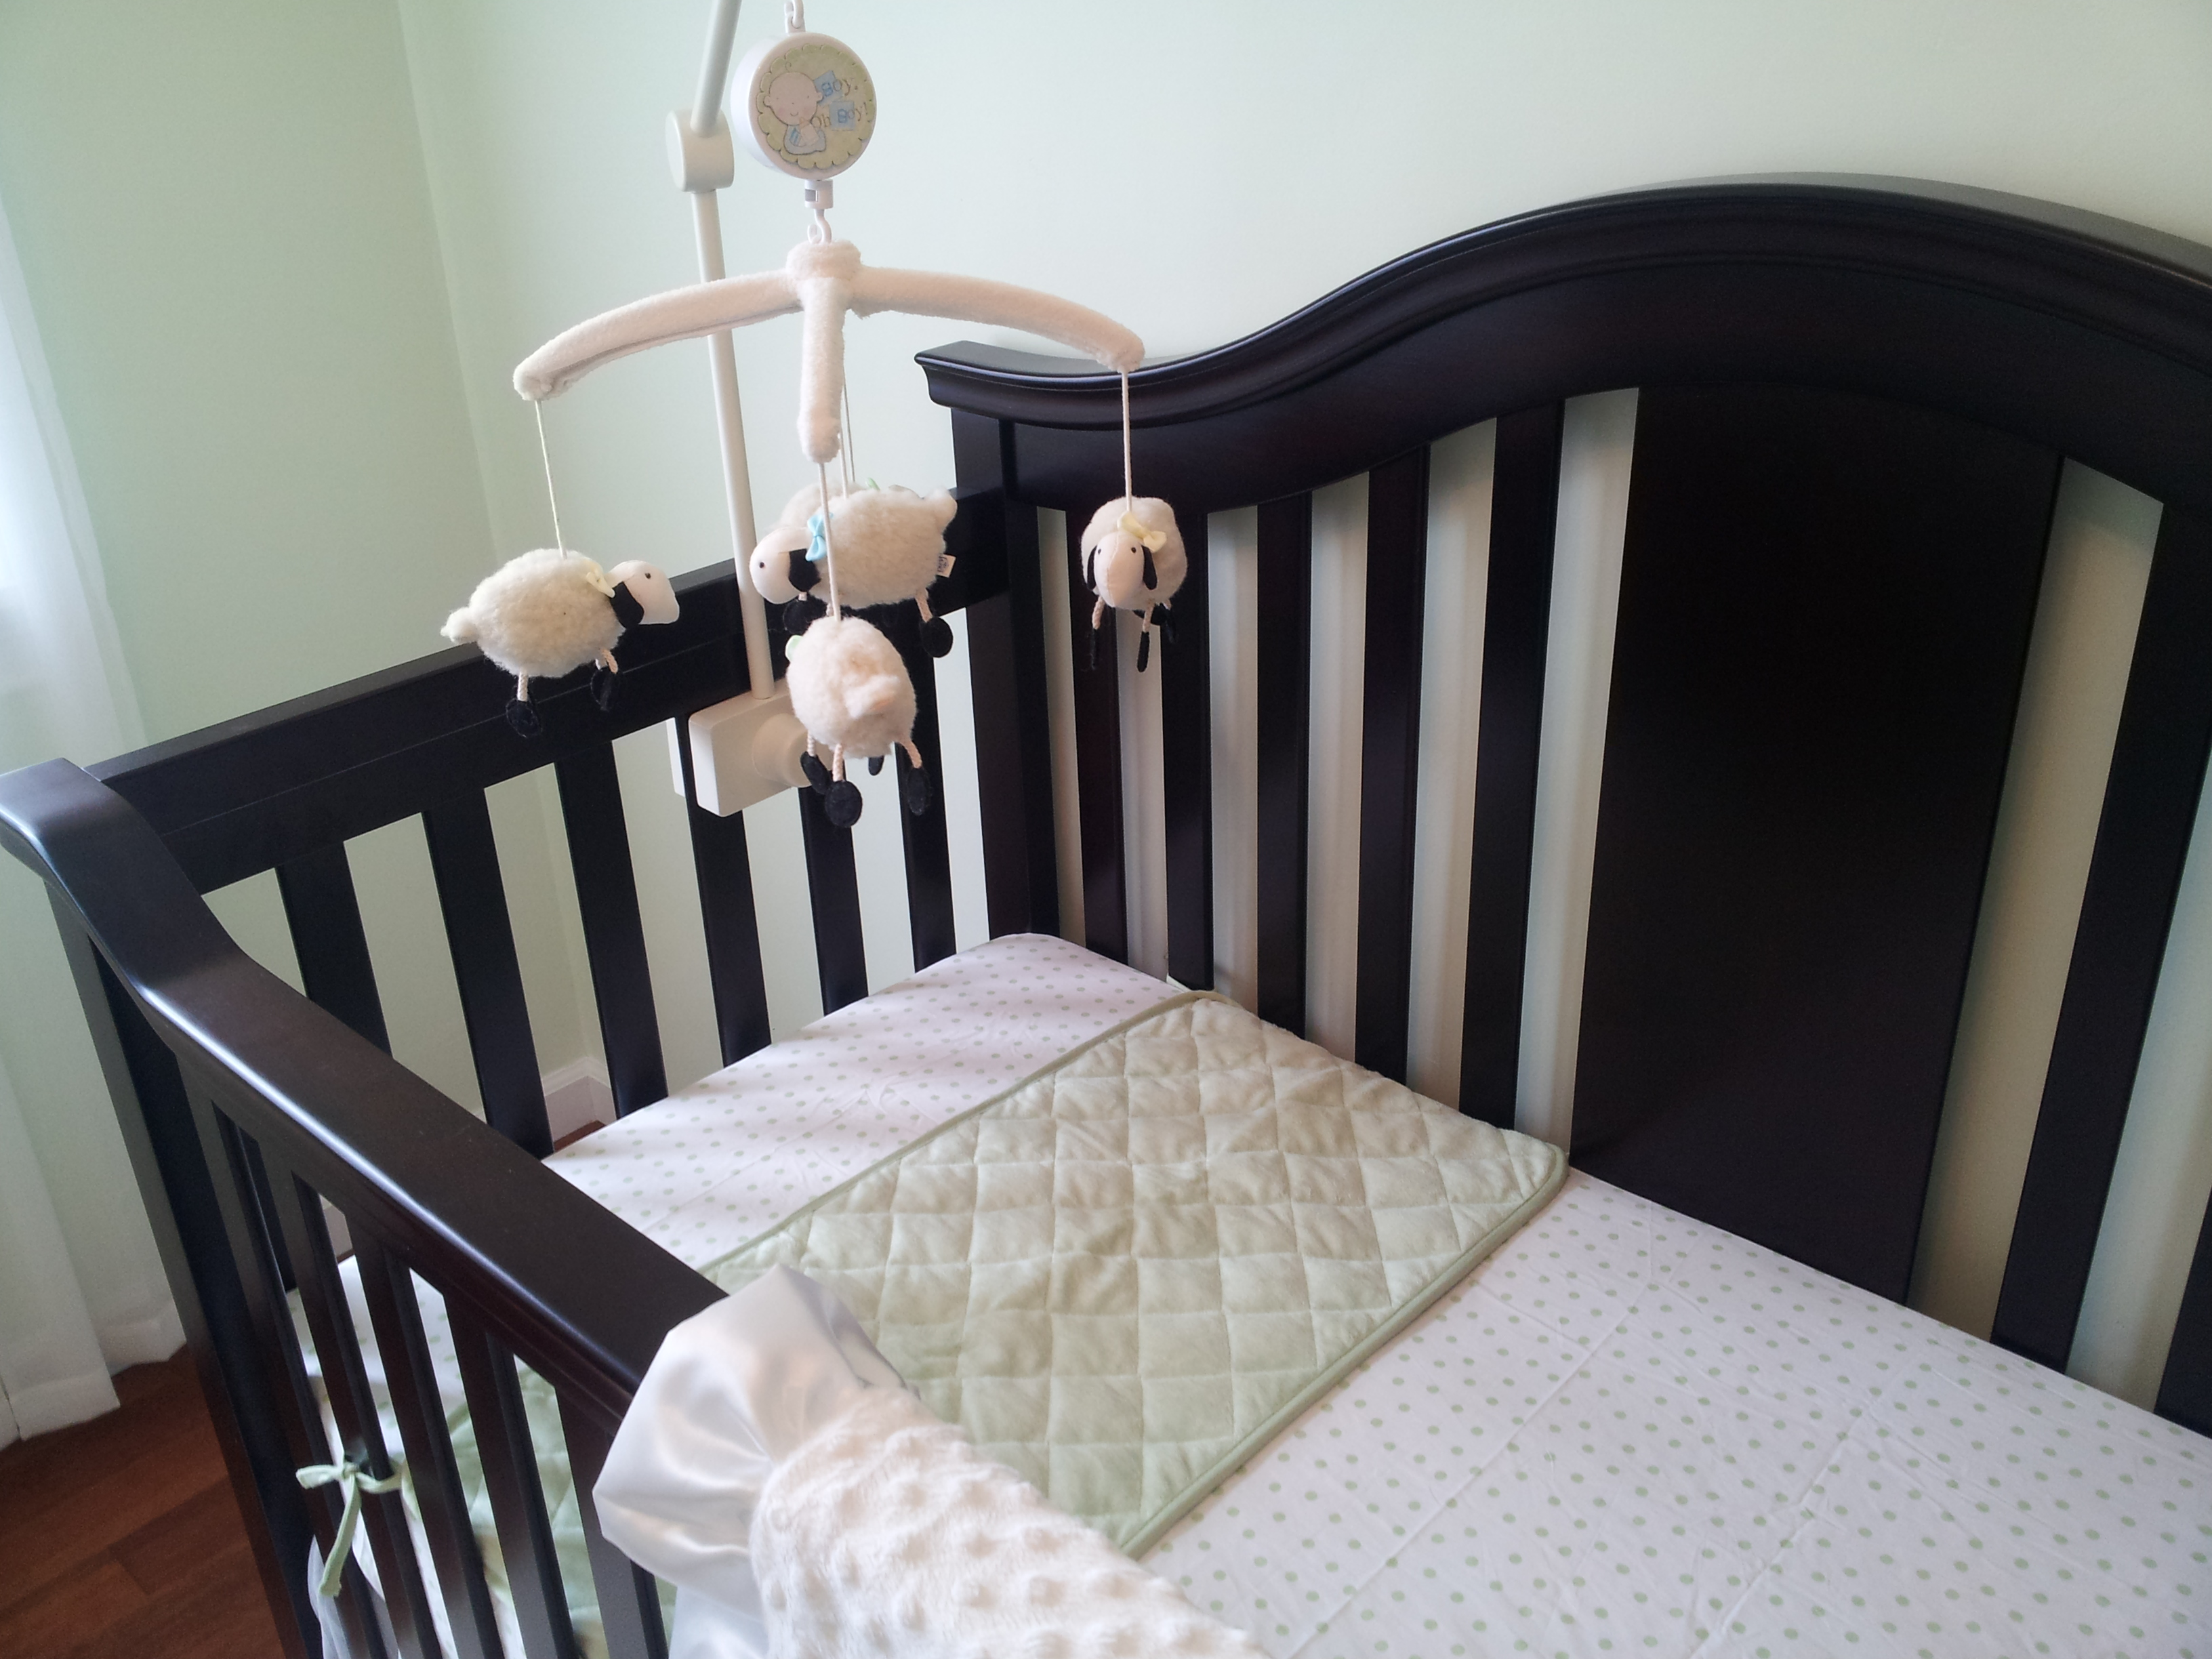 Cushty My Sister Purchased This Crib Mobile From Pottery Moore Mom Pottery Barn Crib Skirt Pottery Barn Crib Hardware baby Pottery Barn Crib